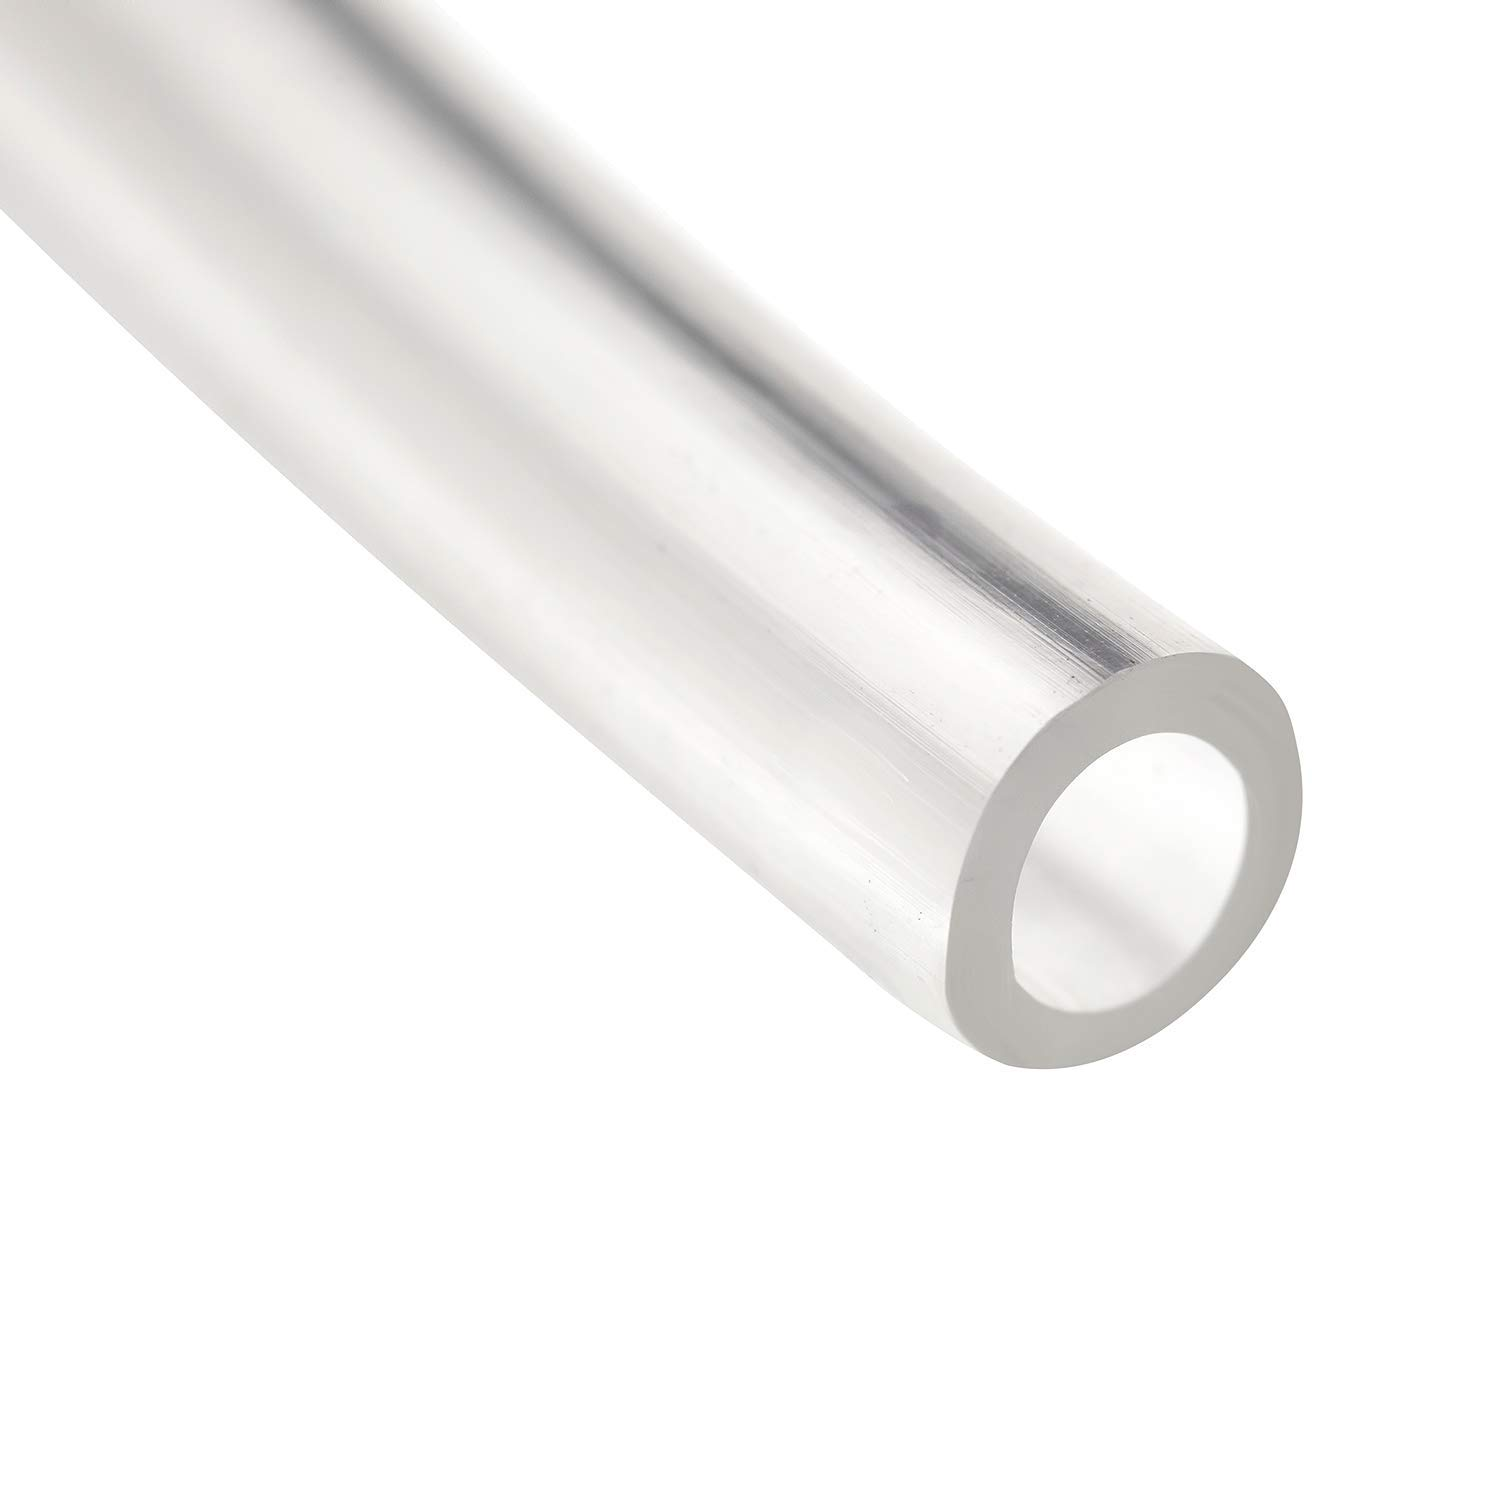 "Houseables Vinyl Tubing, Clear, 1/4"" ID x 3/8"" OD, 100 Ft, Food Grade Tube, PVC Plastic, Flexible Hose, Flex Pipe For Water, Beverage Pump, Homebrew, Wine Siphon, Brewing Bottling Wand"